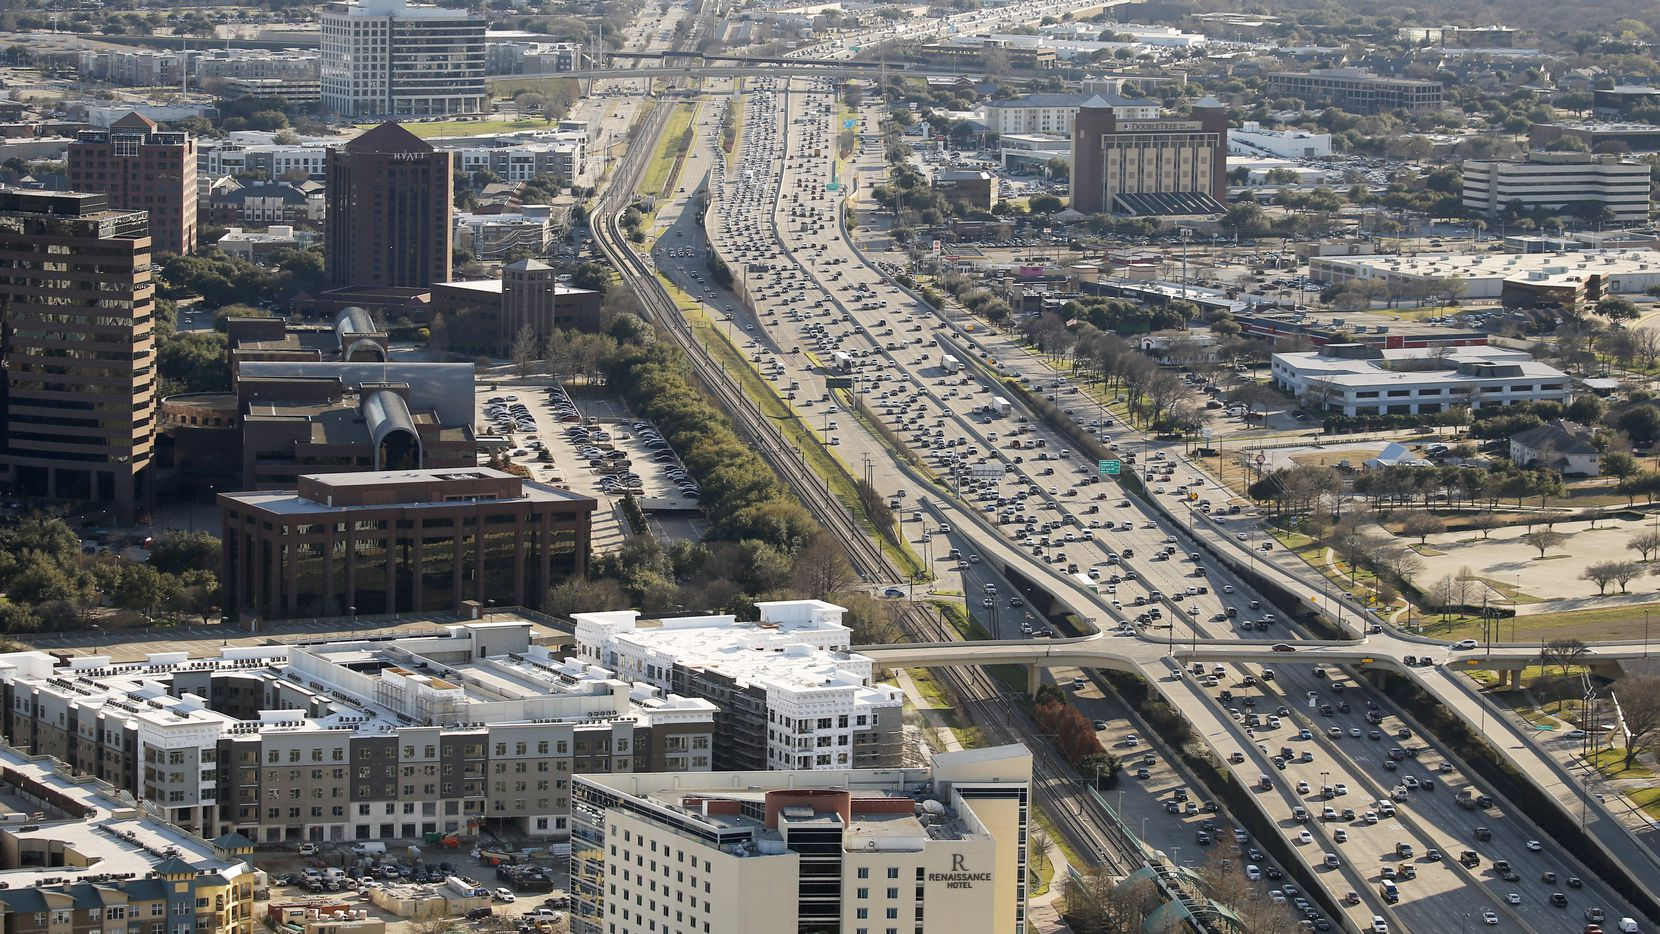 Traffic along Central Expressway in Richardson, Texas on Friday, February 28, 2020.